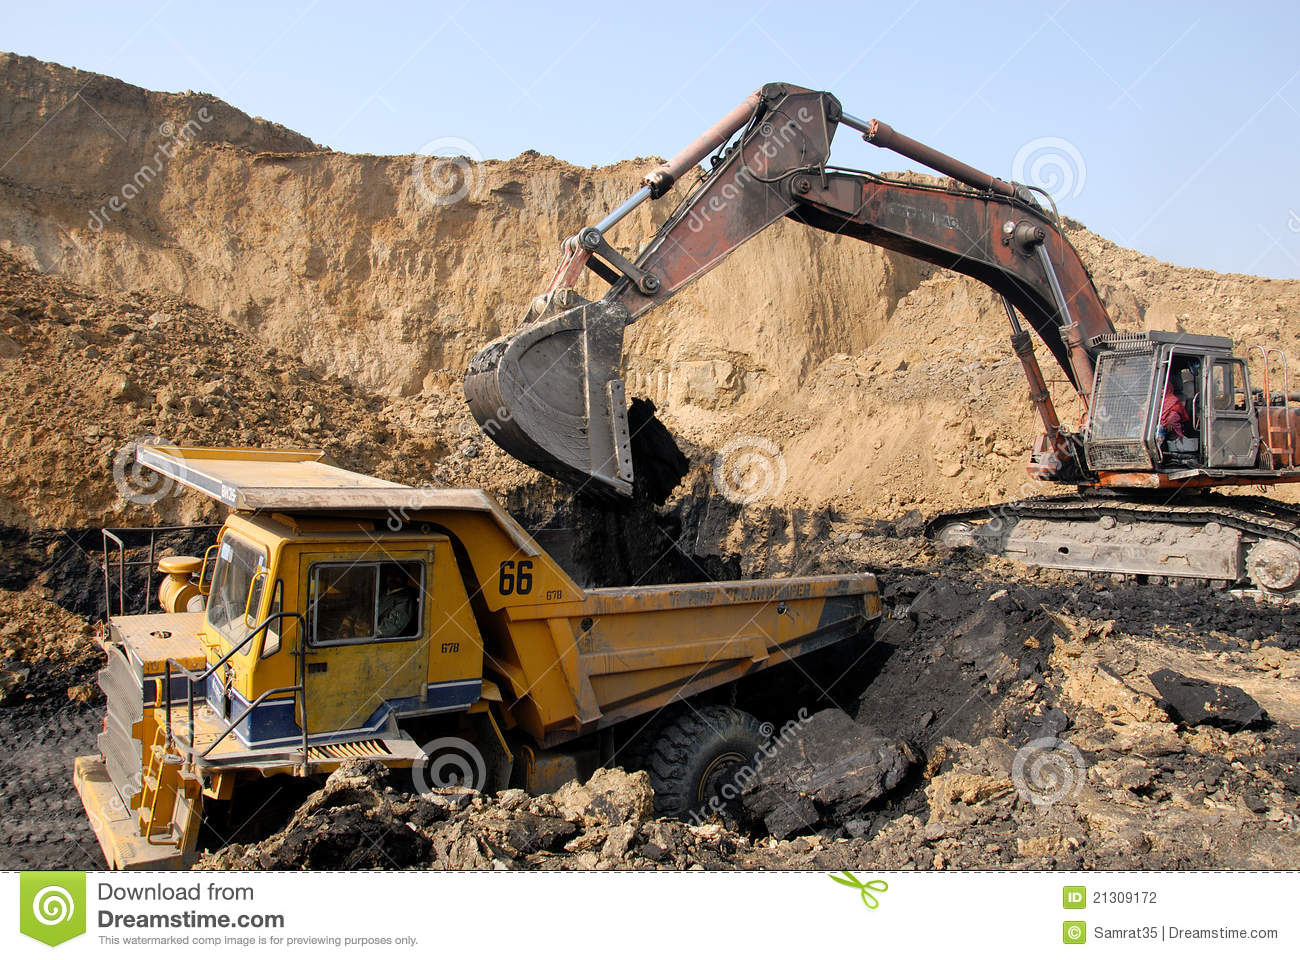 which machine will work best to dig a in the soil